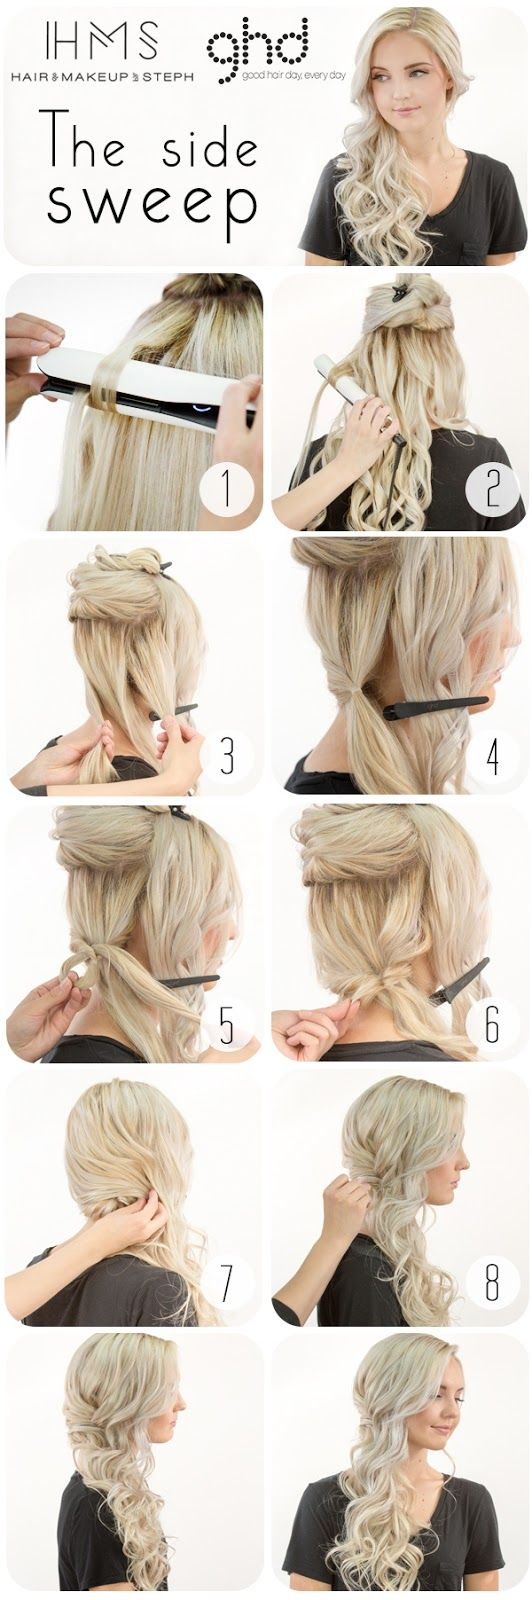 how to: bridal side swept hair | lifestyle | hair styles